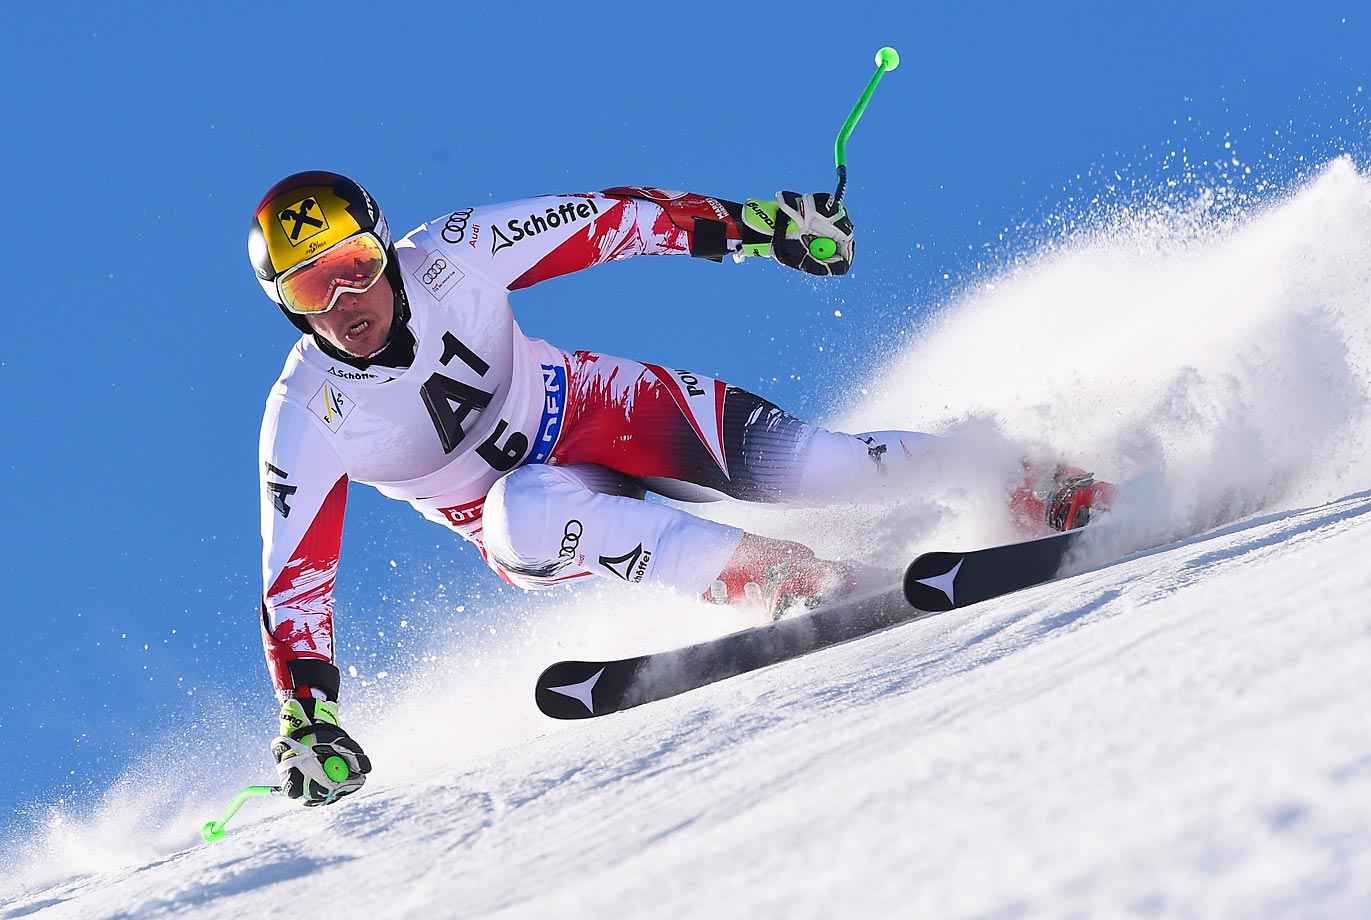 Marcel Hirscher of Austria competes in the giant slalom of the Audi FIS Alpine Ski World Cup.